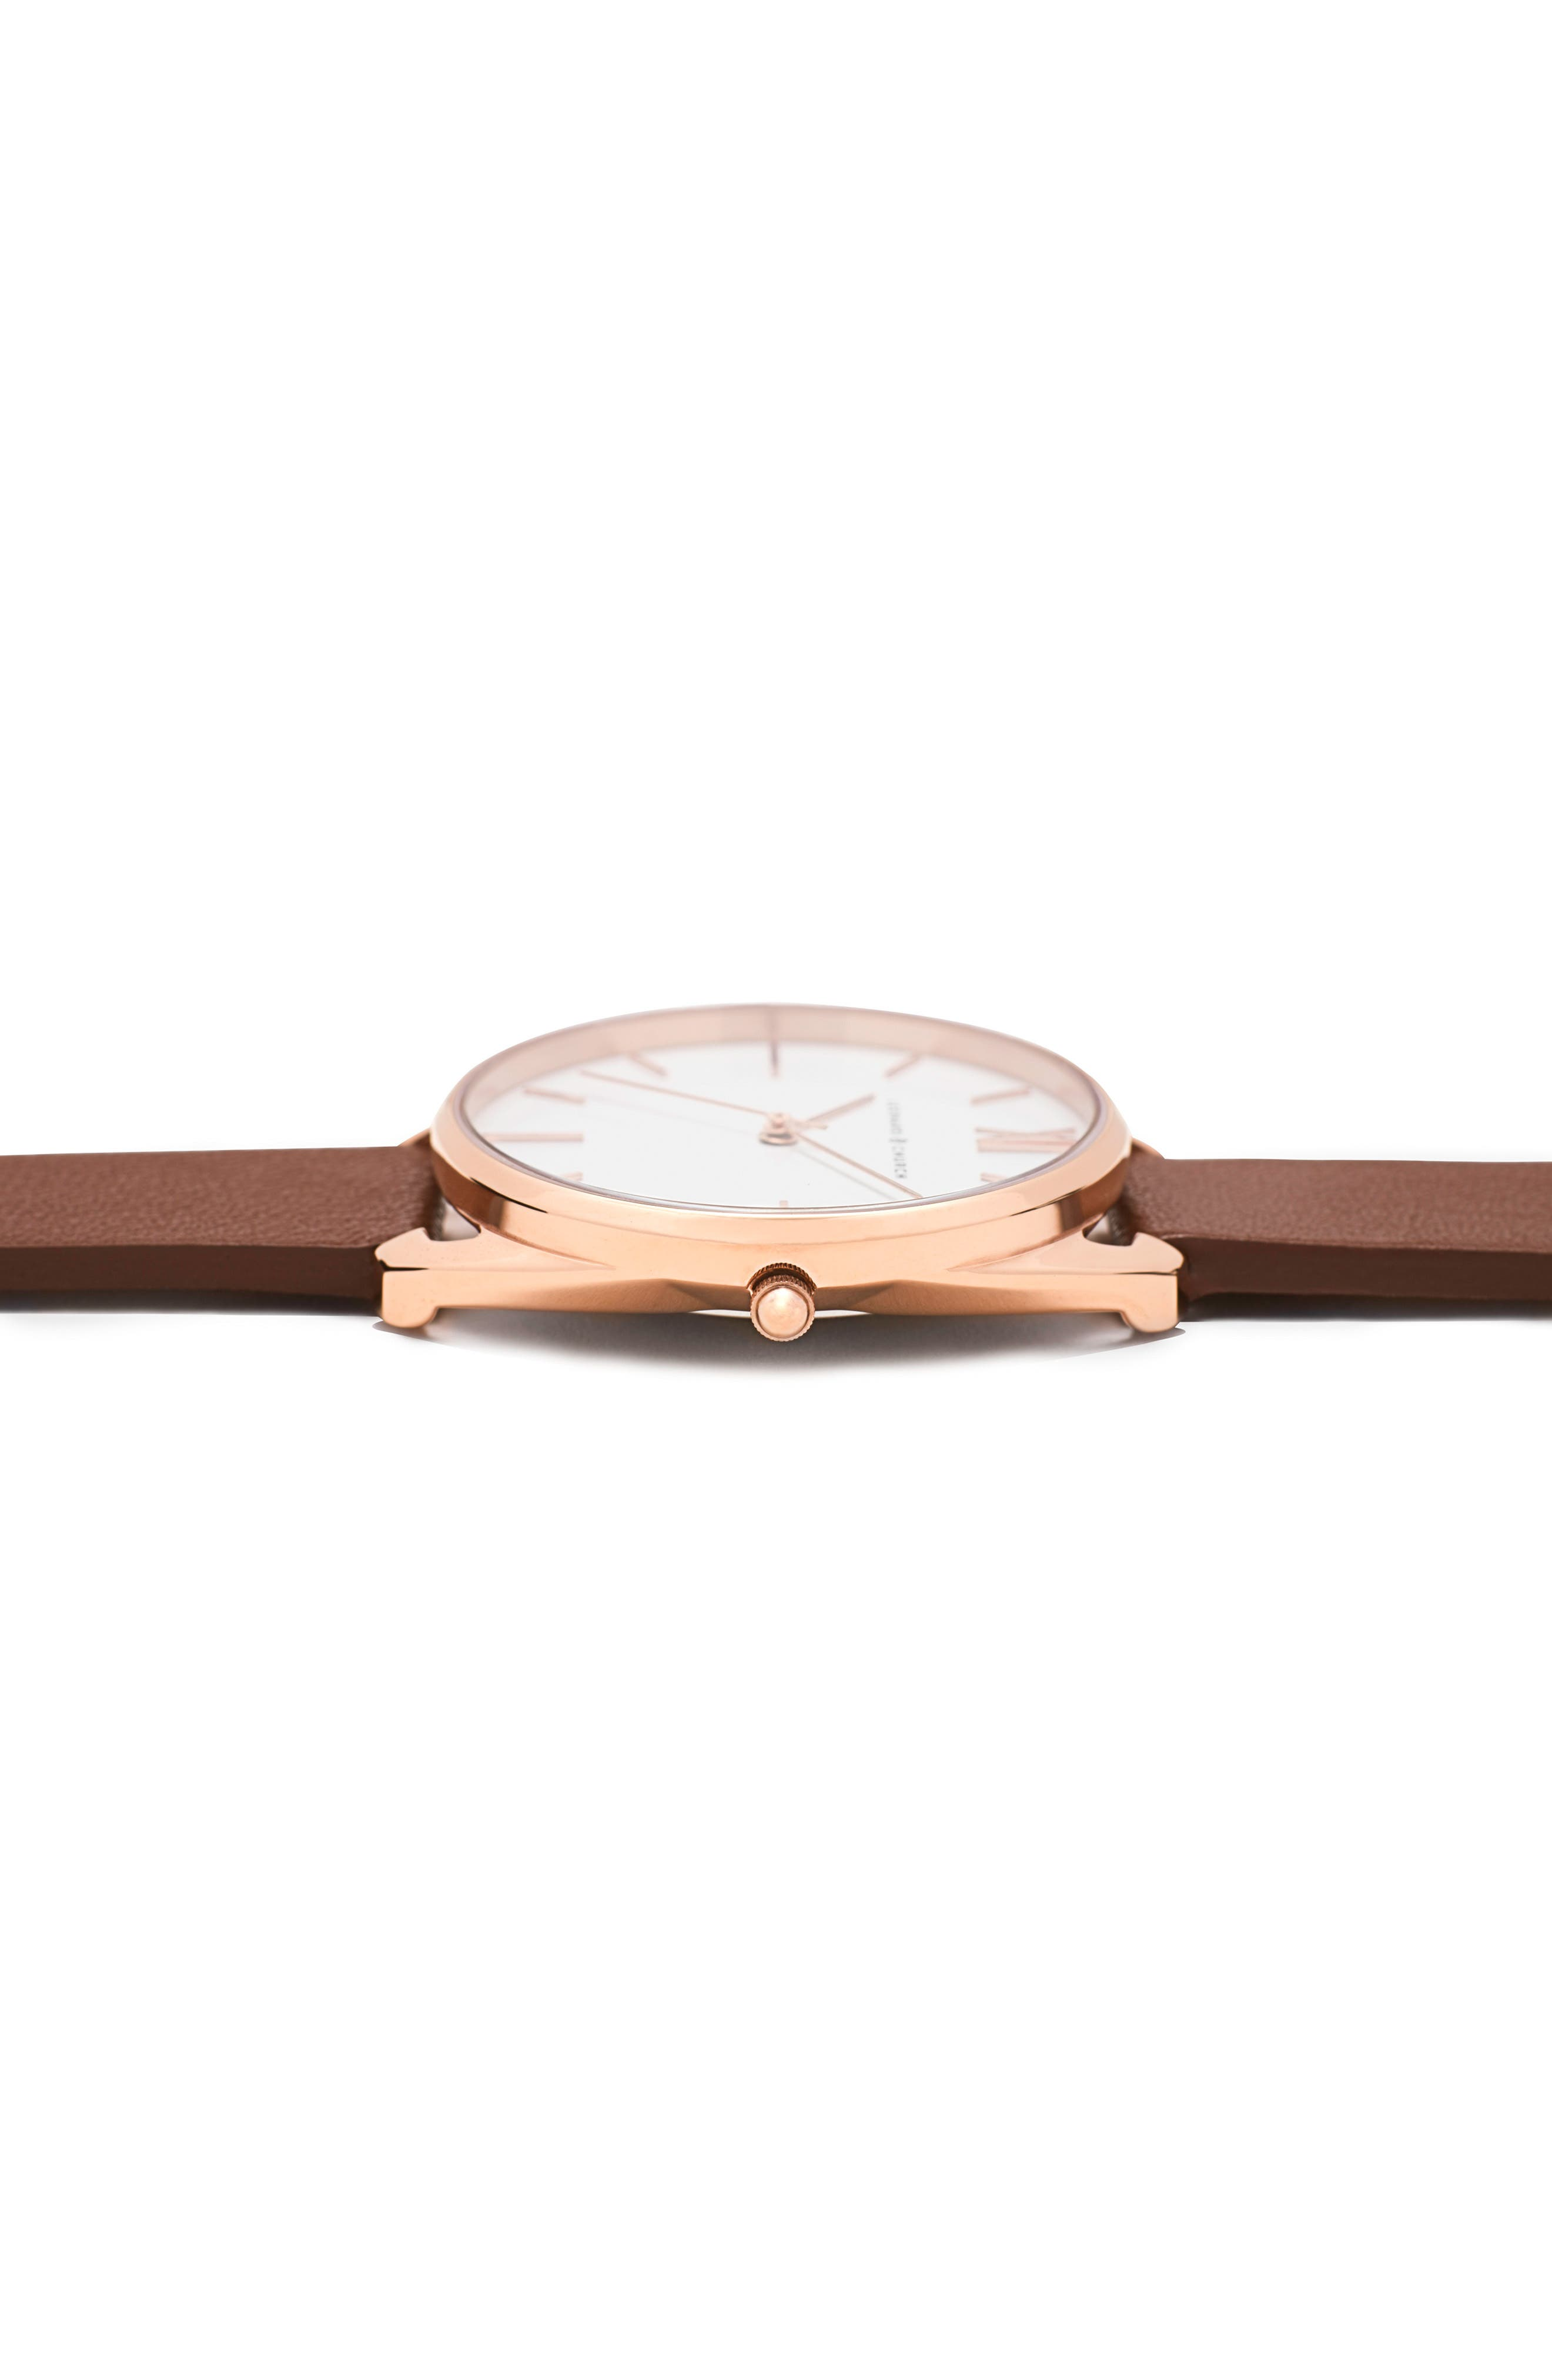 Leonard & Church Chelsea Leather Strap Watch, 34mm,                             Alternate thumbnail 3, color,                             Brown/ White/ Rose Gold